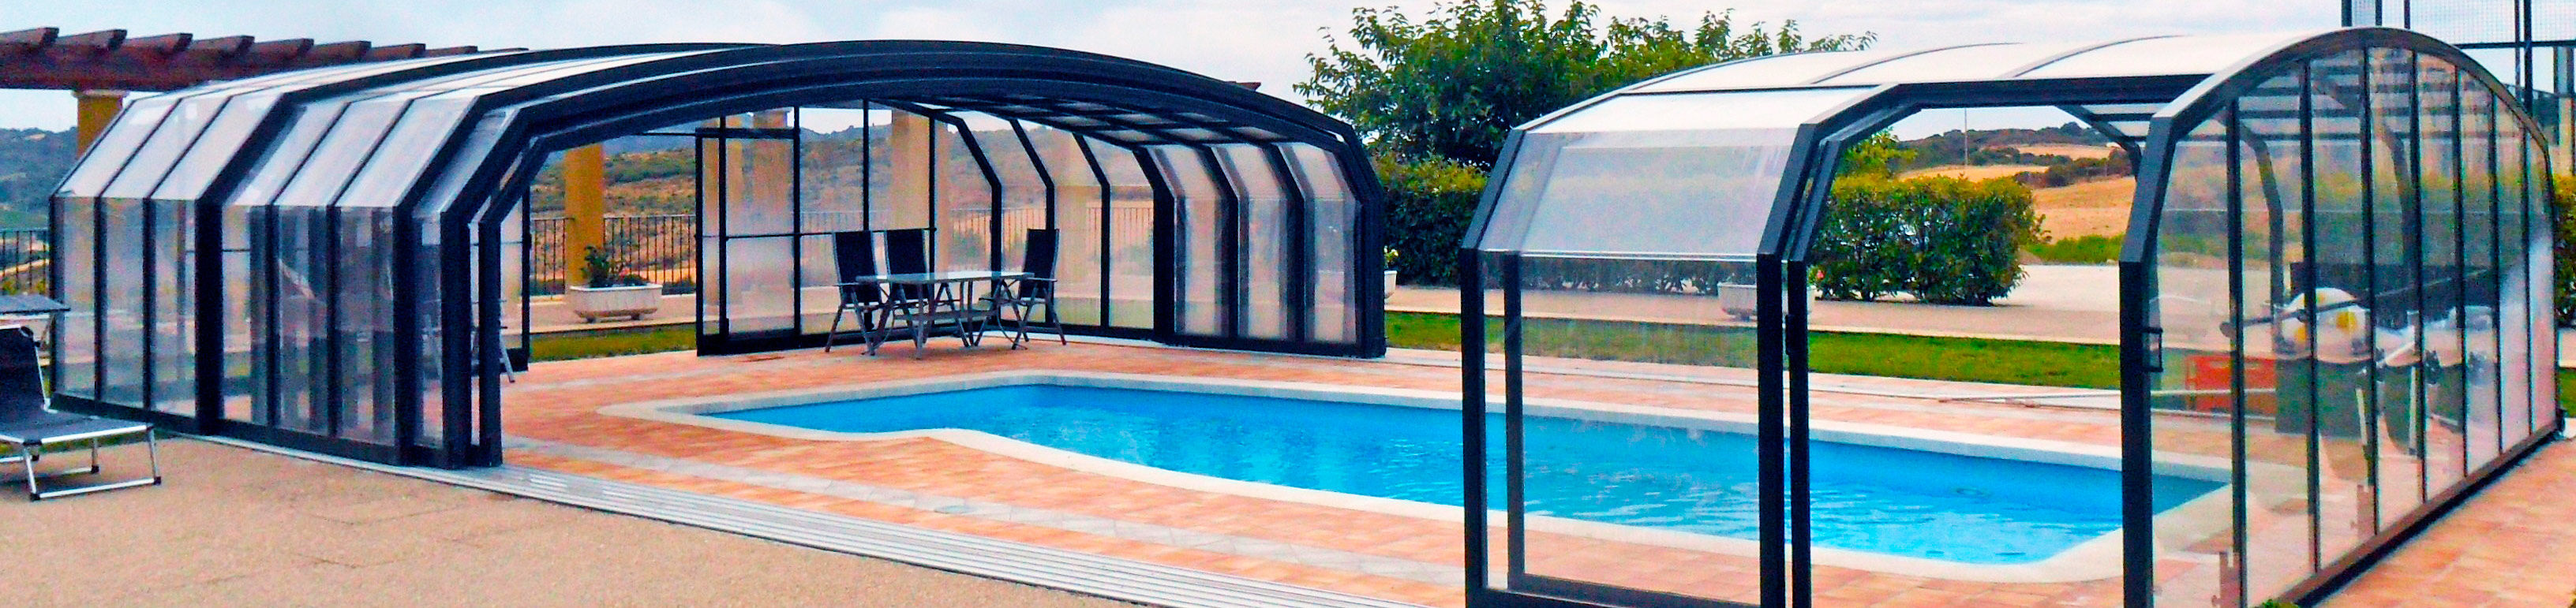 Retractable swimming pool enclosure oceanic high sunrooms Retractable swimming pool enclosures